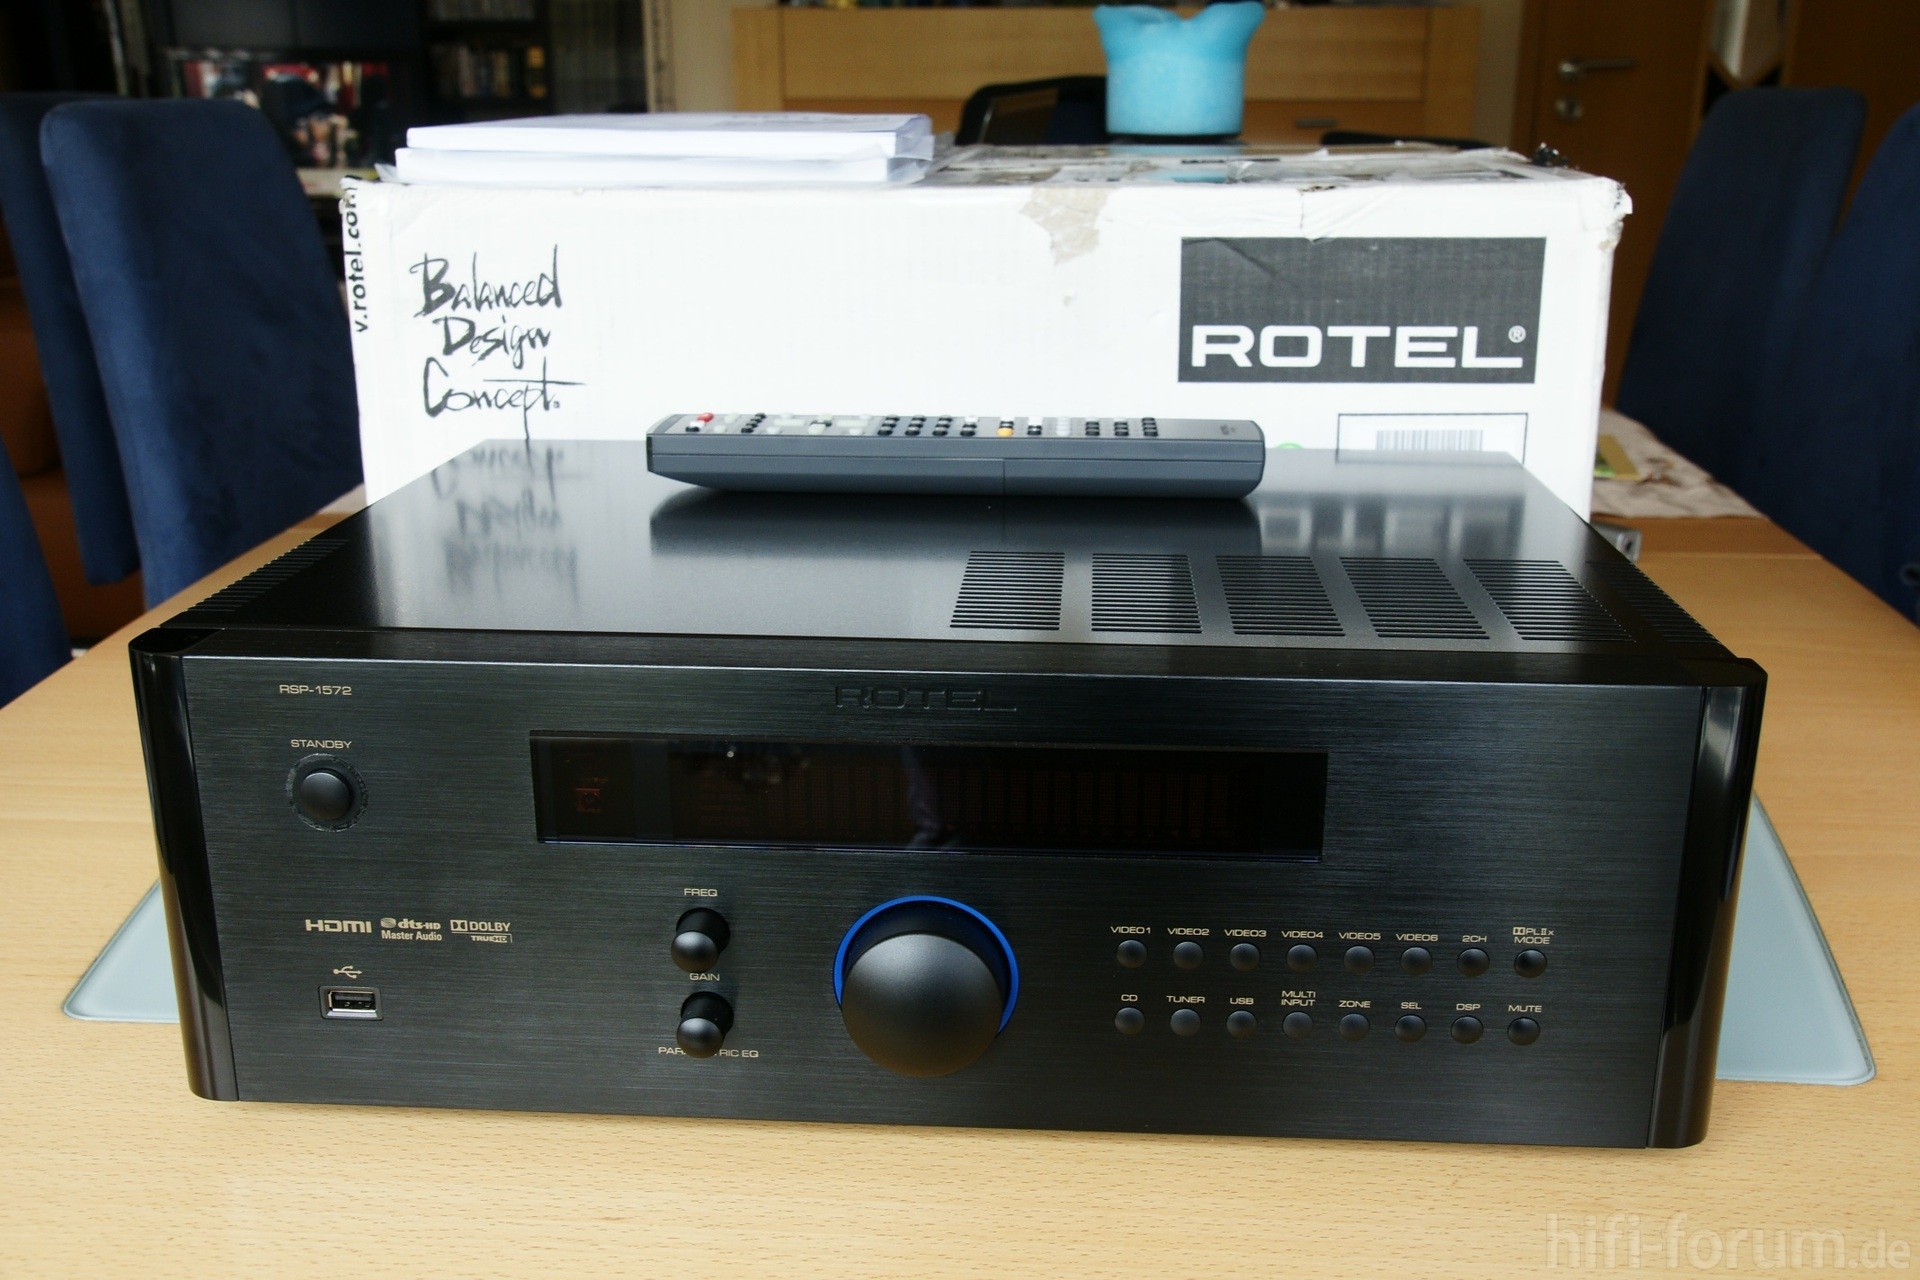 how to update rotel rsp 1572 firmware